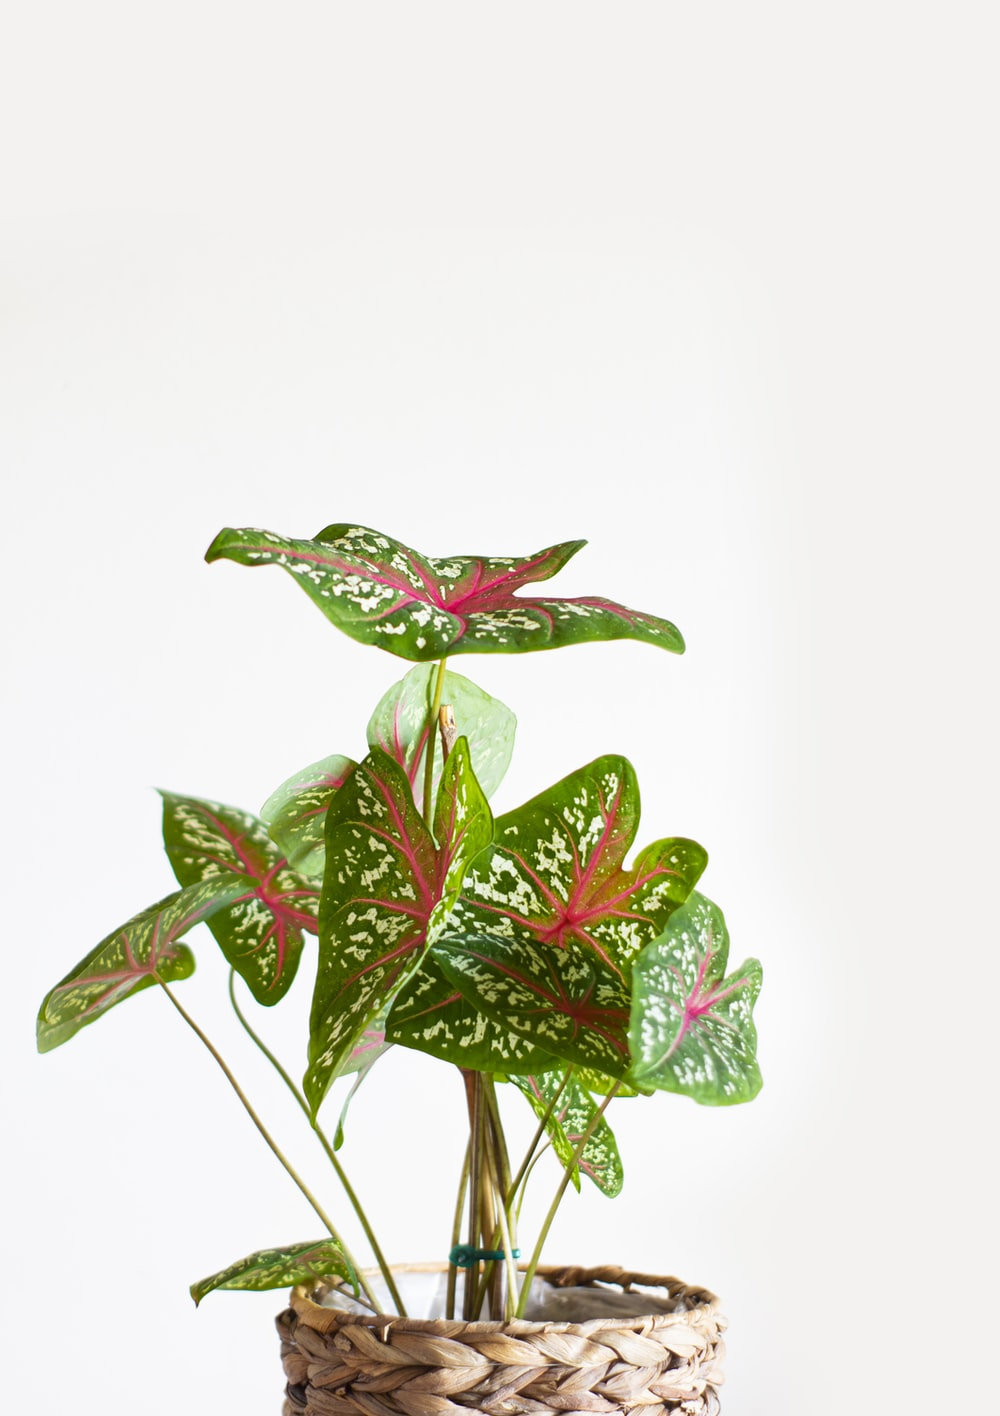 red and green leaves on white background